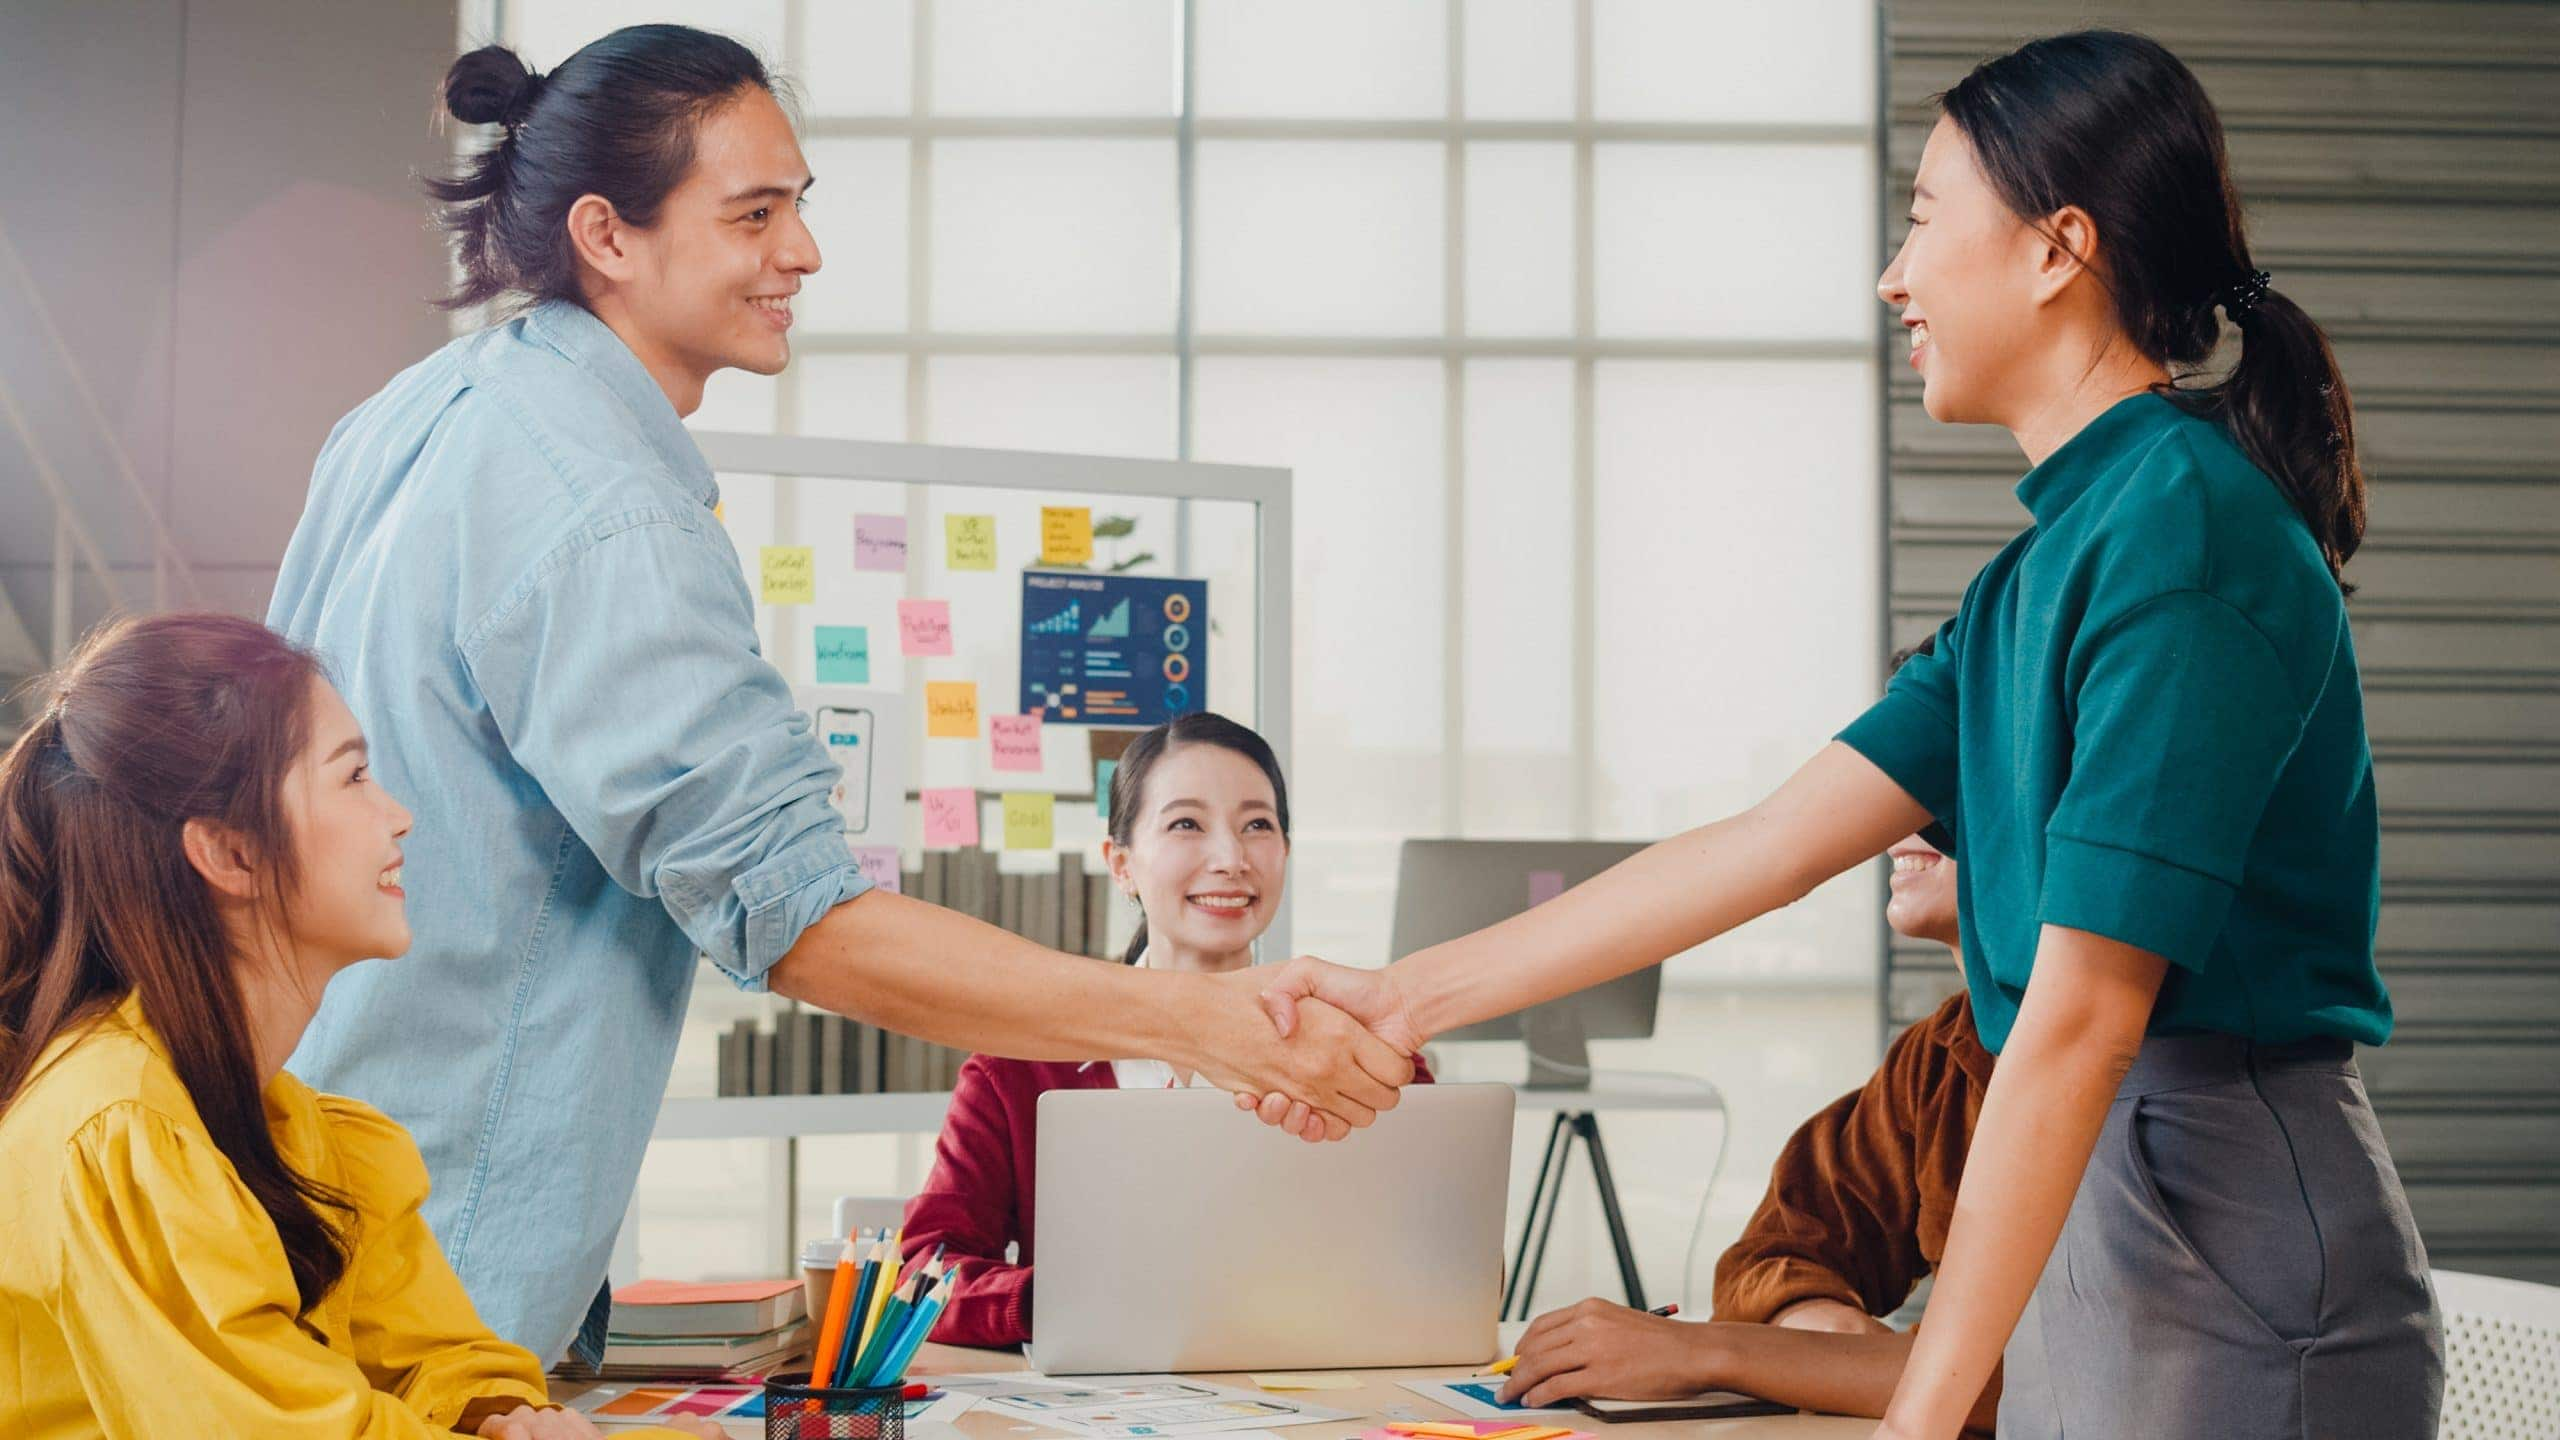 multiracial group young creative people smart casual wear discussing business shaking hands together smiling while standing modern office partner cooperation coworker teamwork concept scaled